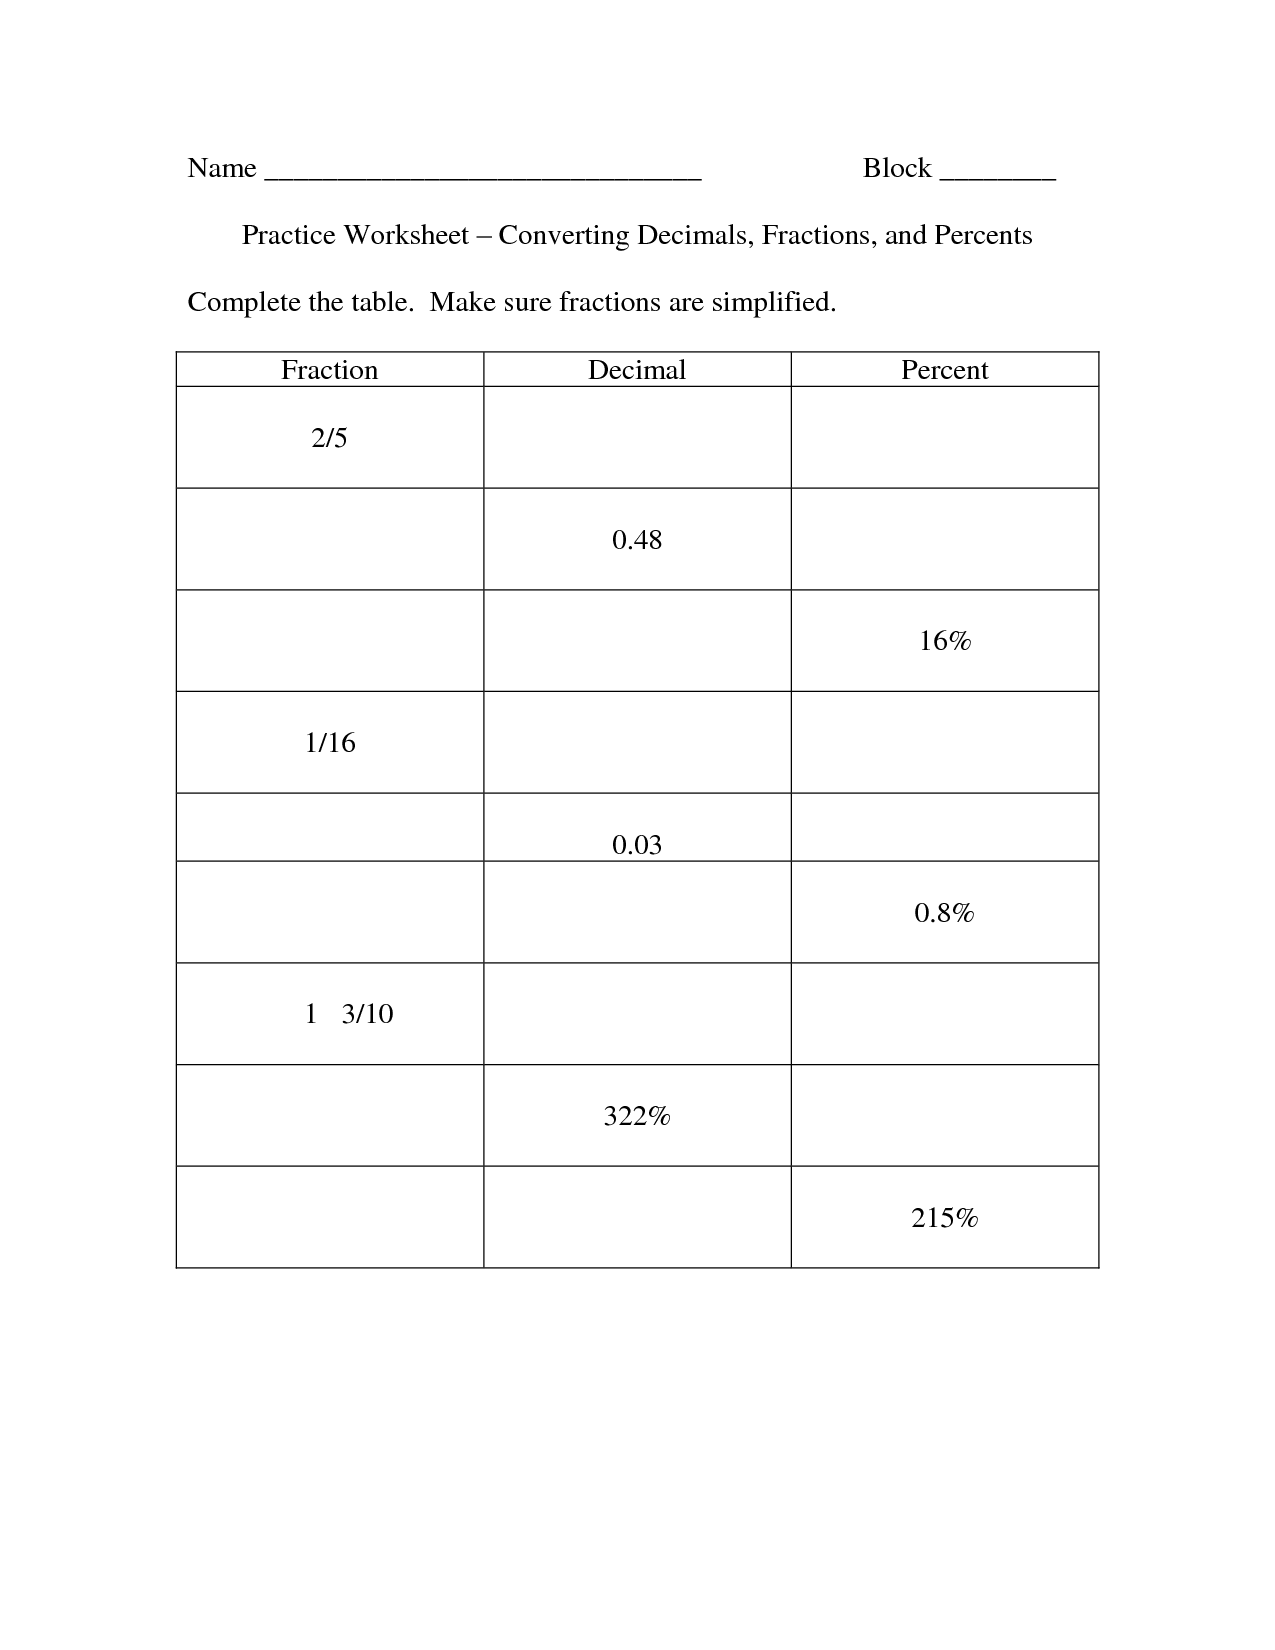 Homework Help Fractions Decimals